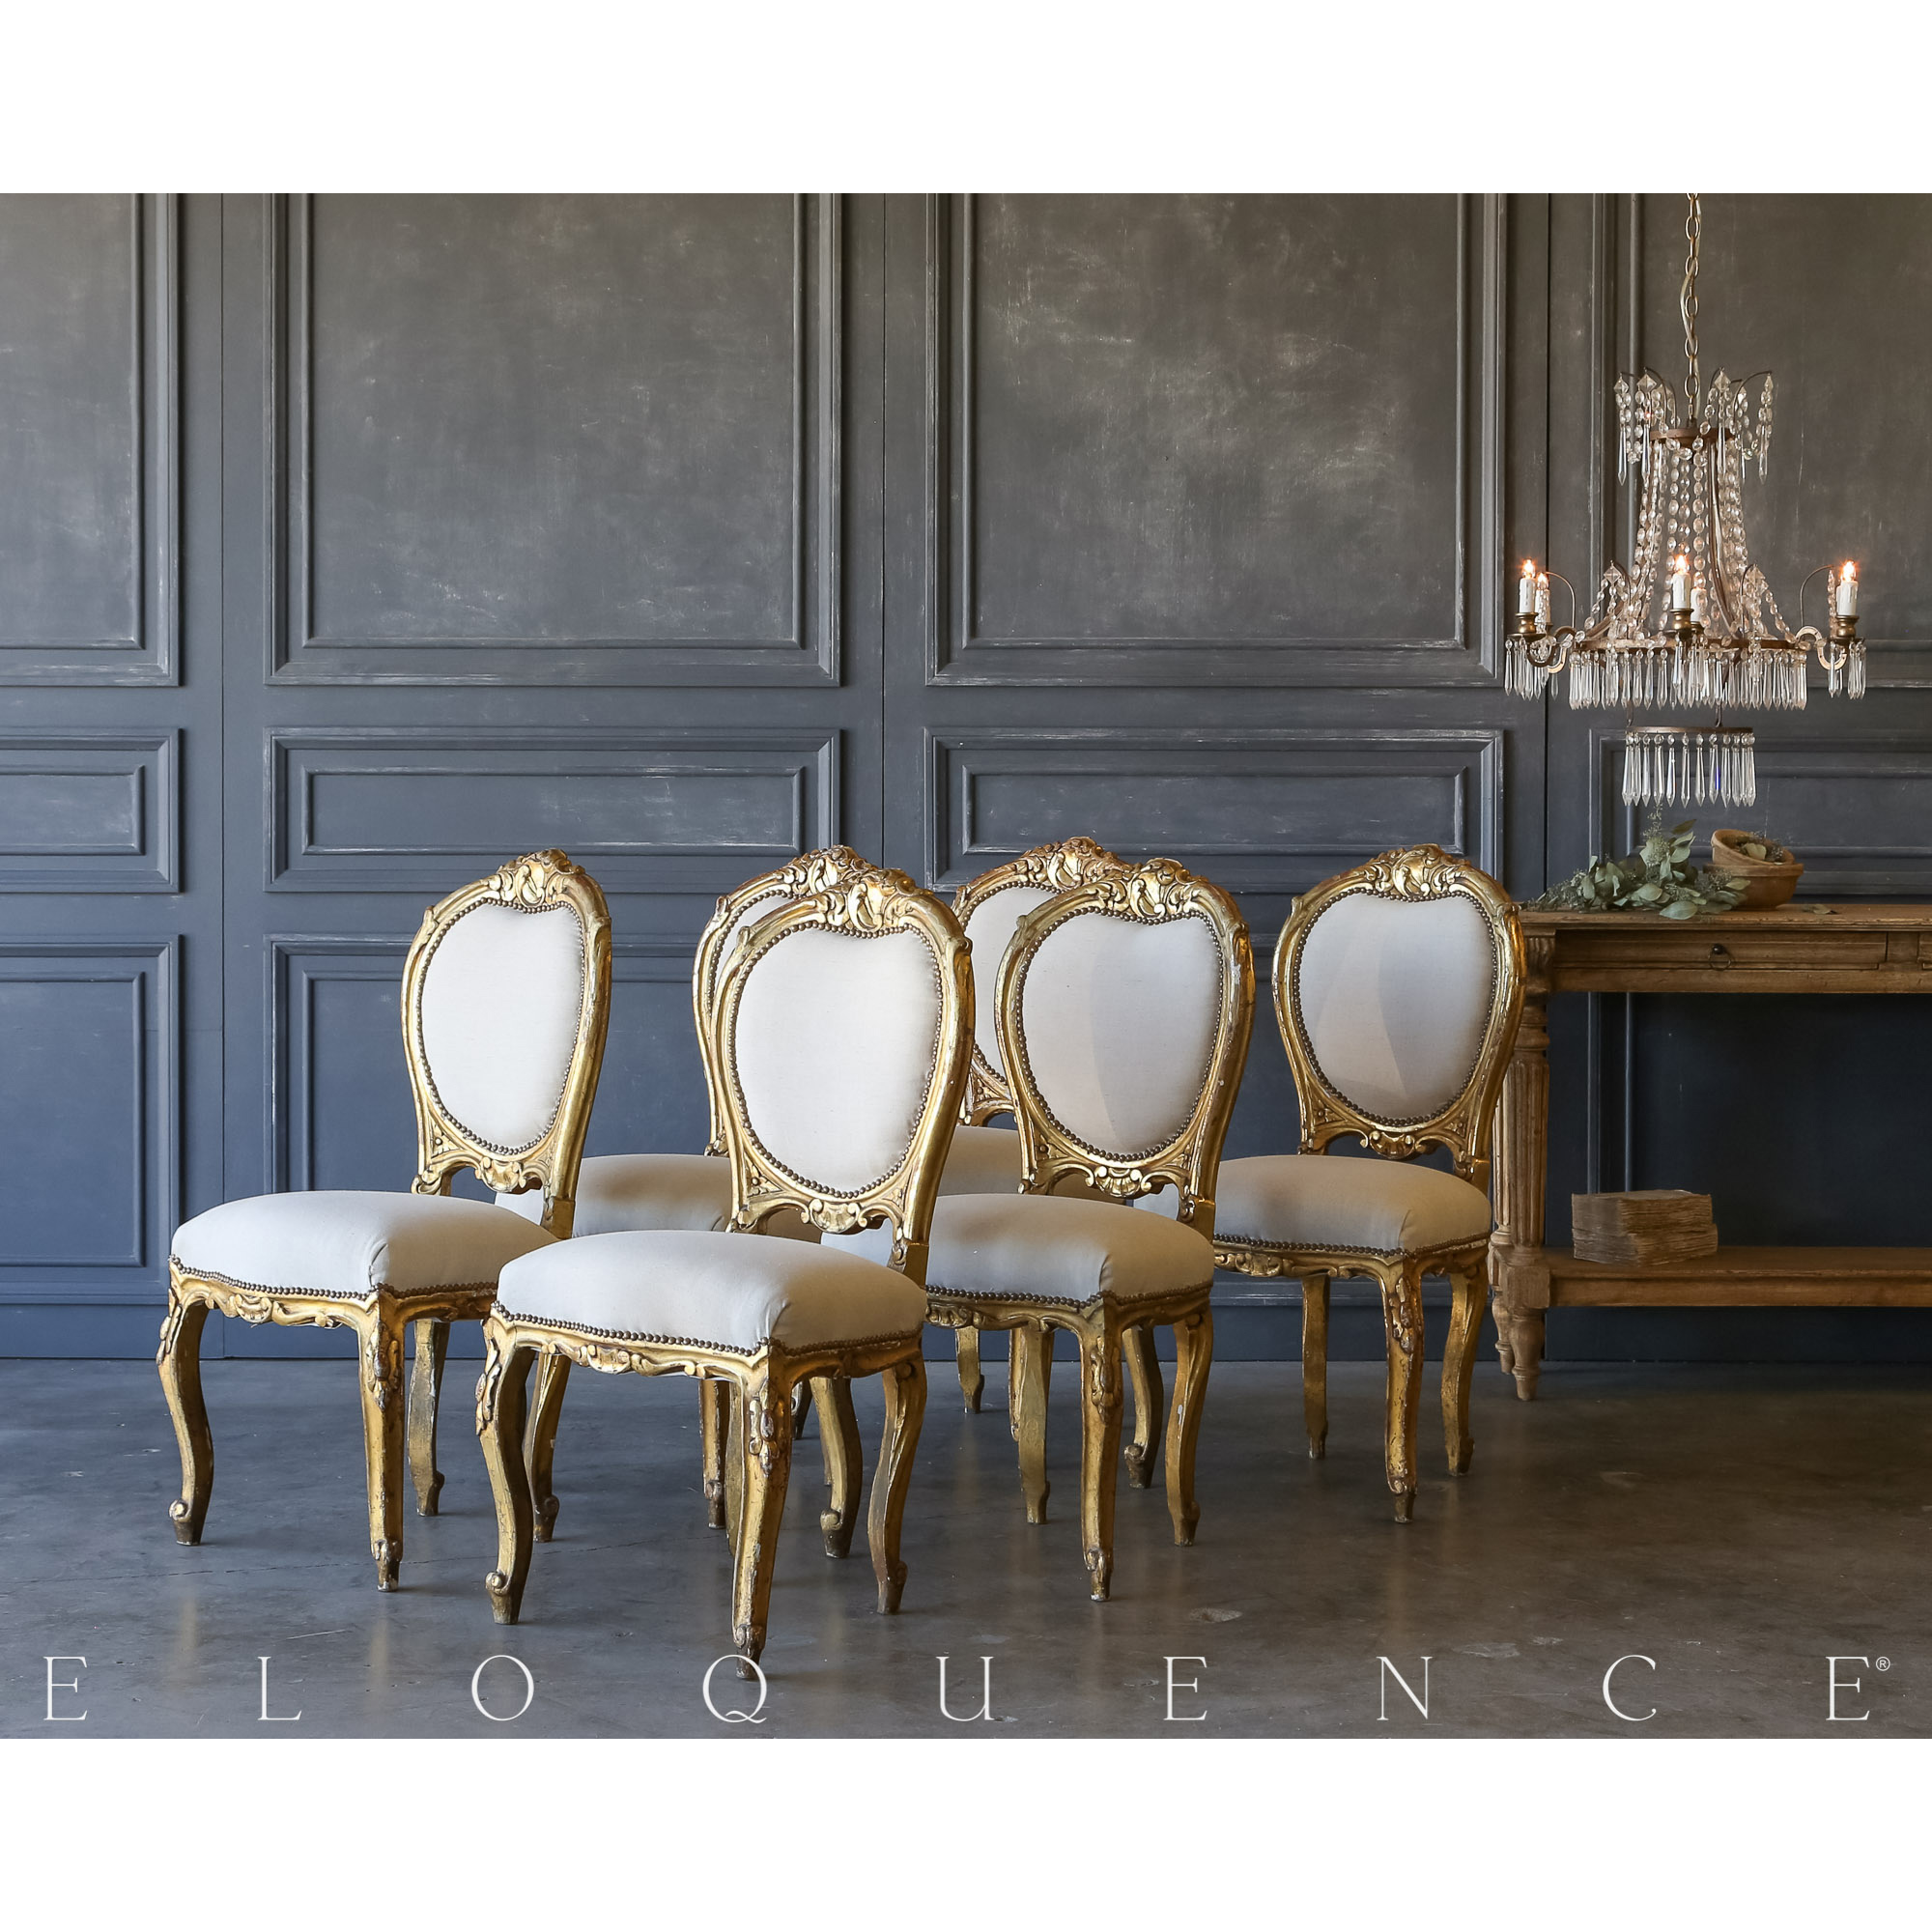 Eloquence® Set of 6 Vintage Gilded Side Chairs: 1940